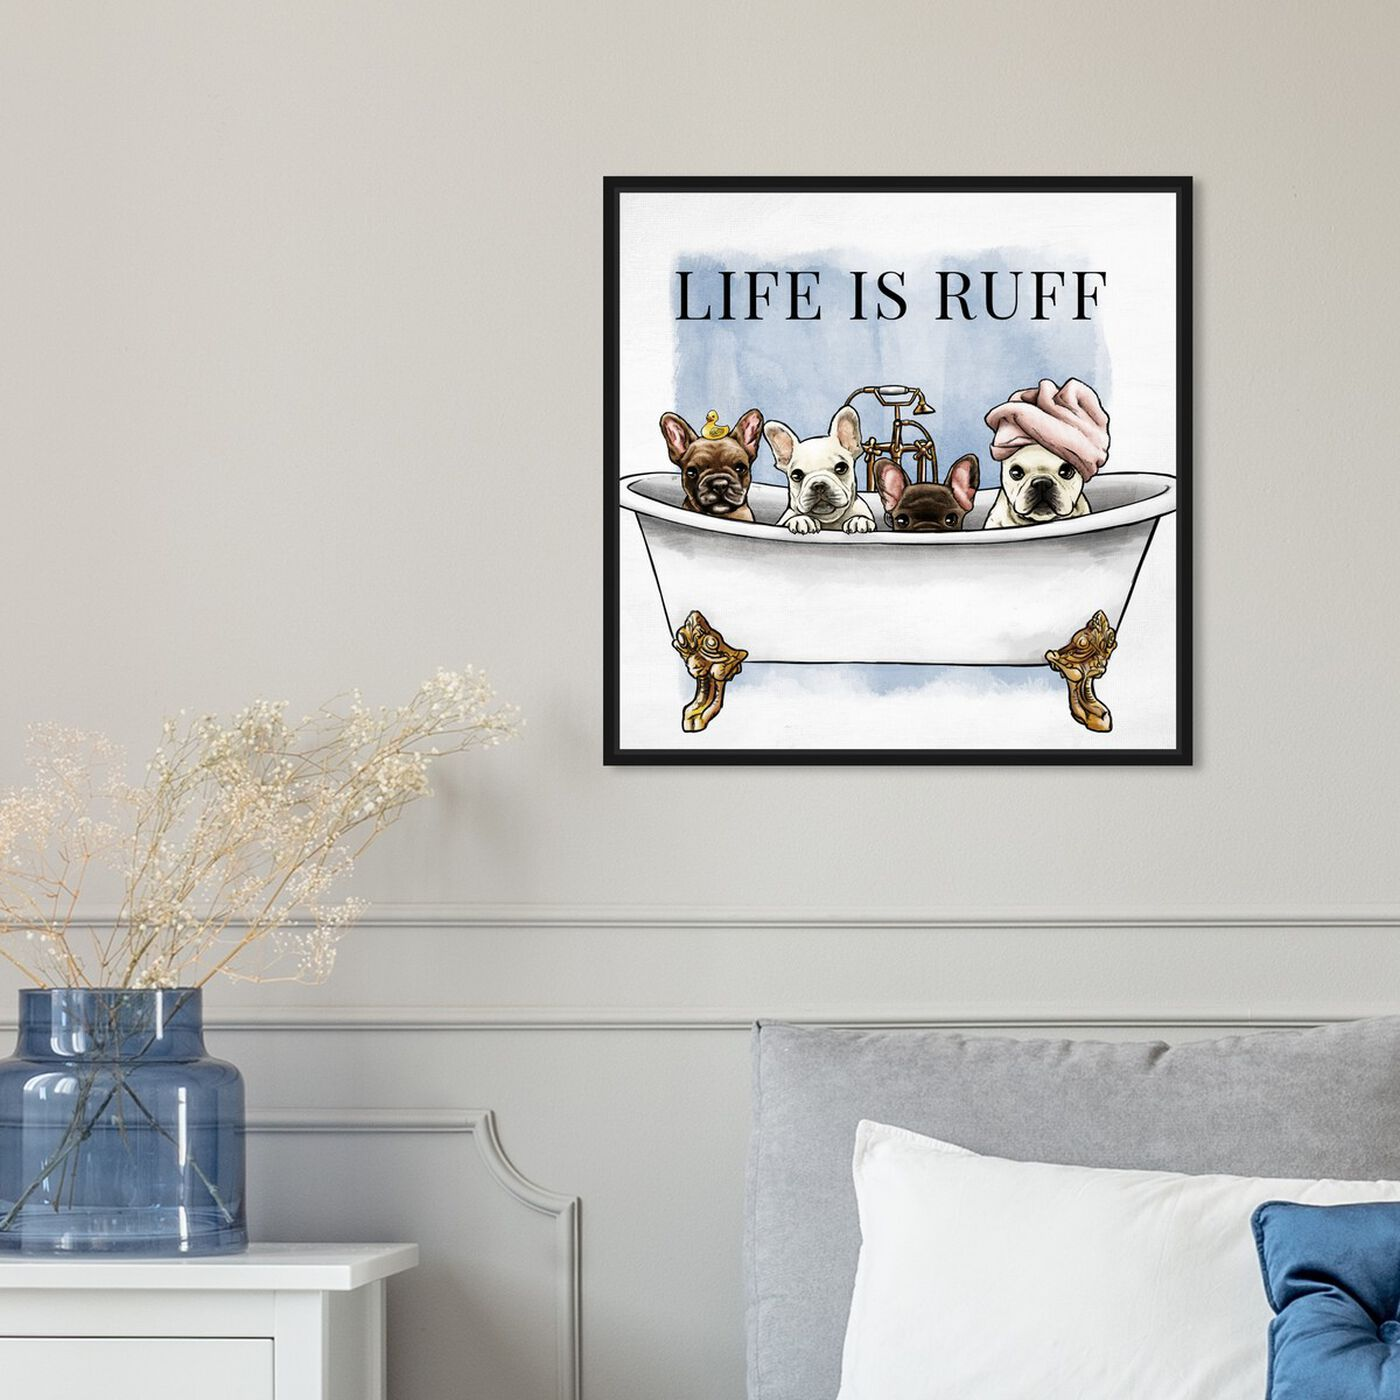 Hanging view of Life is Ruff featuring bath and laundry and bathtubs art.